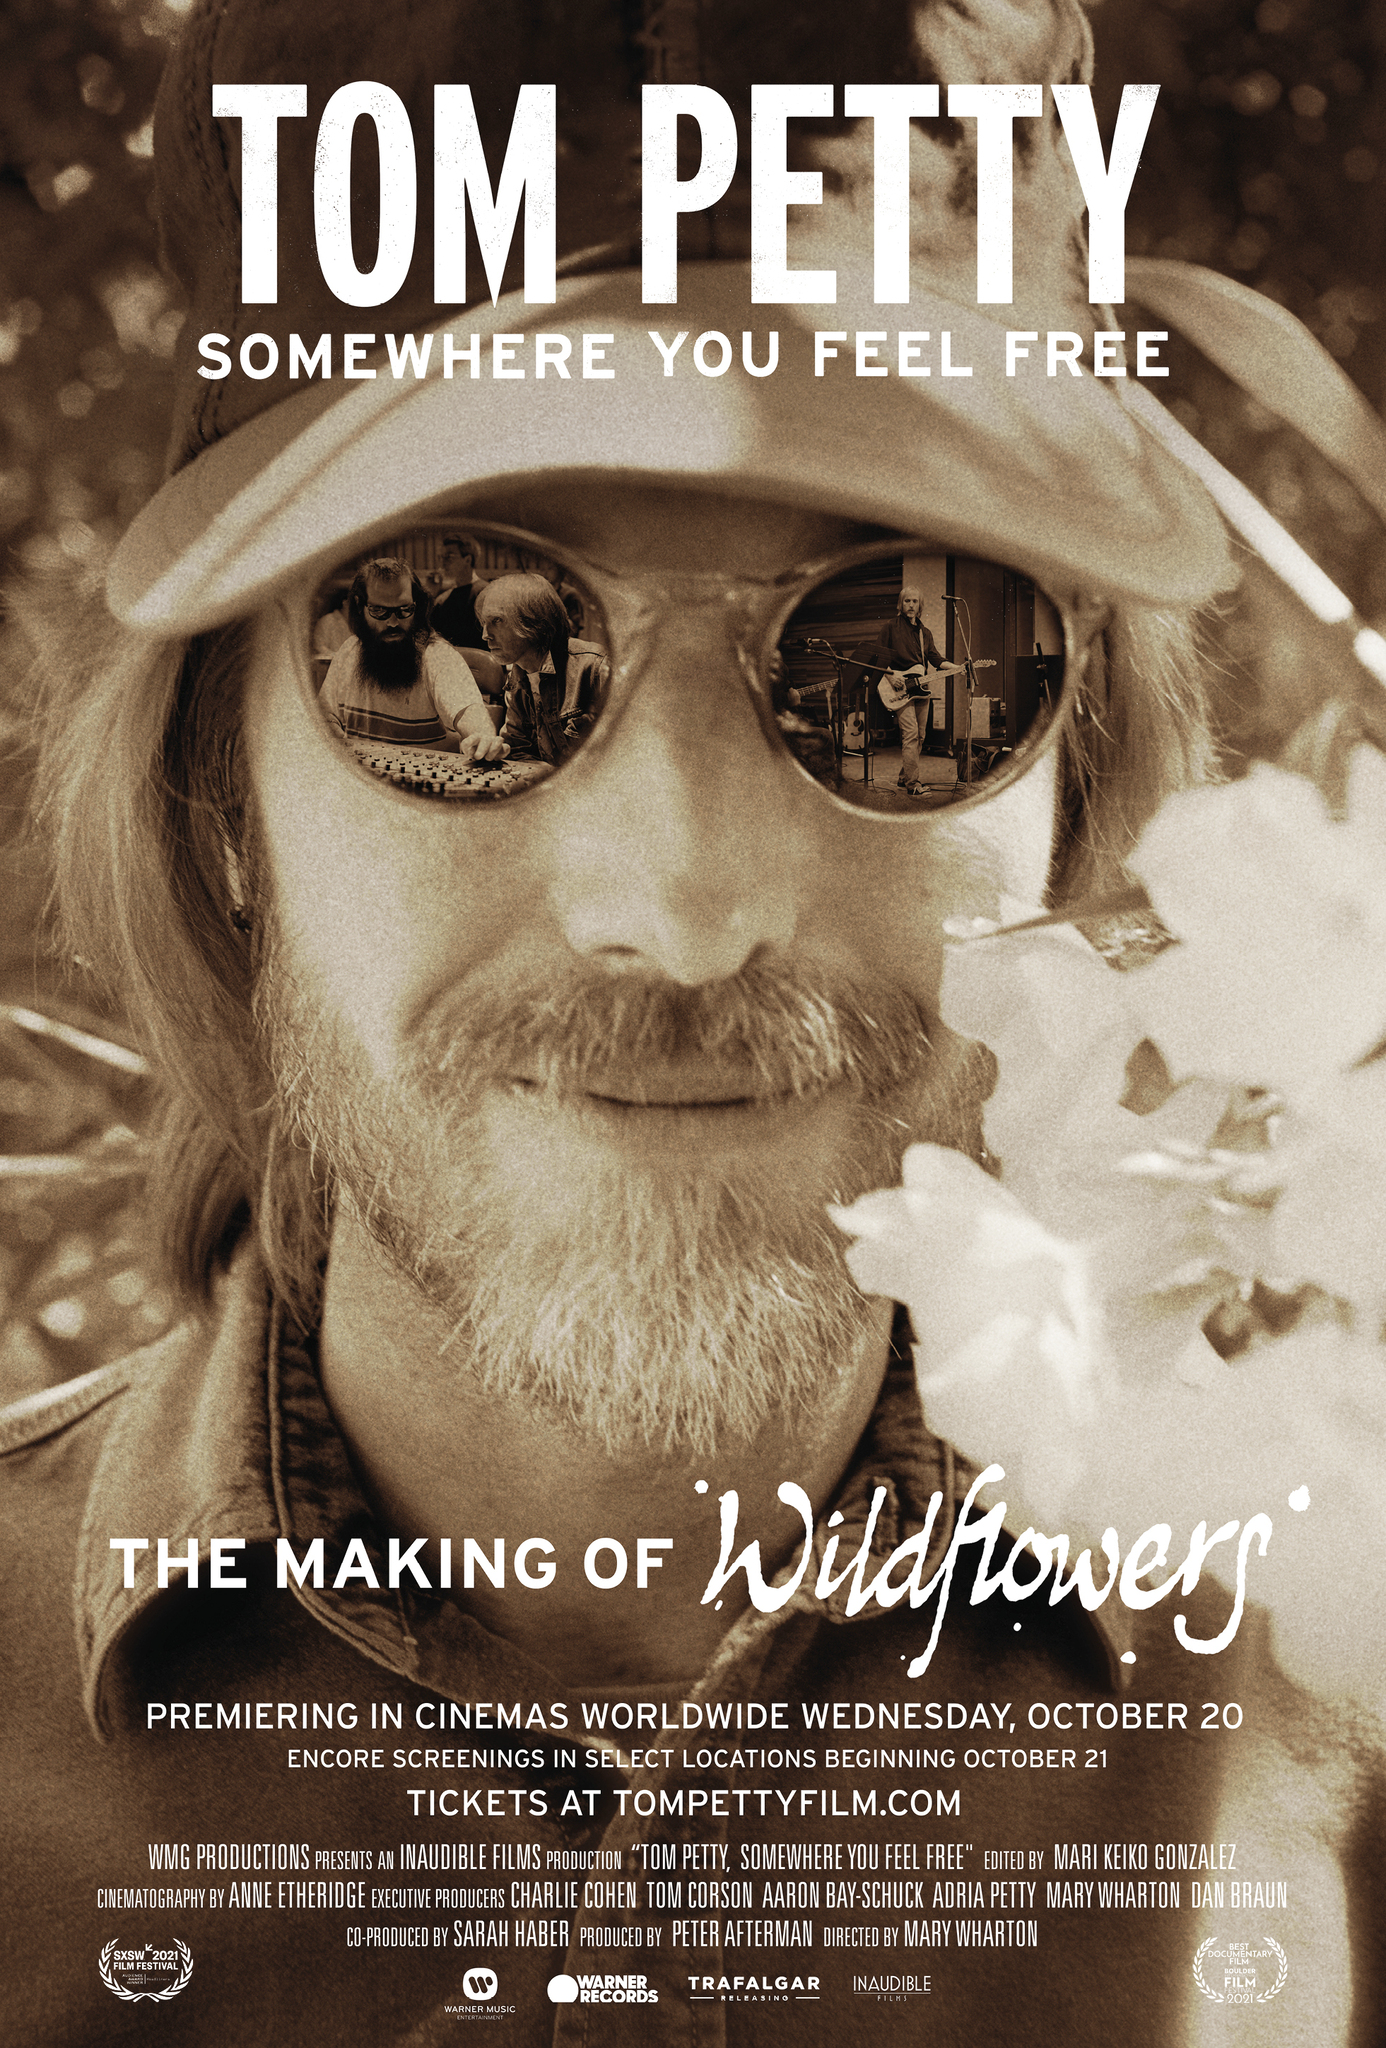 Movie poster image for TOM PETTY, SOMEWHERE YOU FEEL FREE: THE MAKING OF WILDFLOWERS